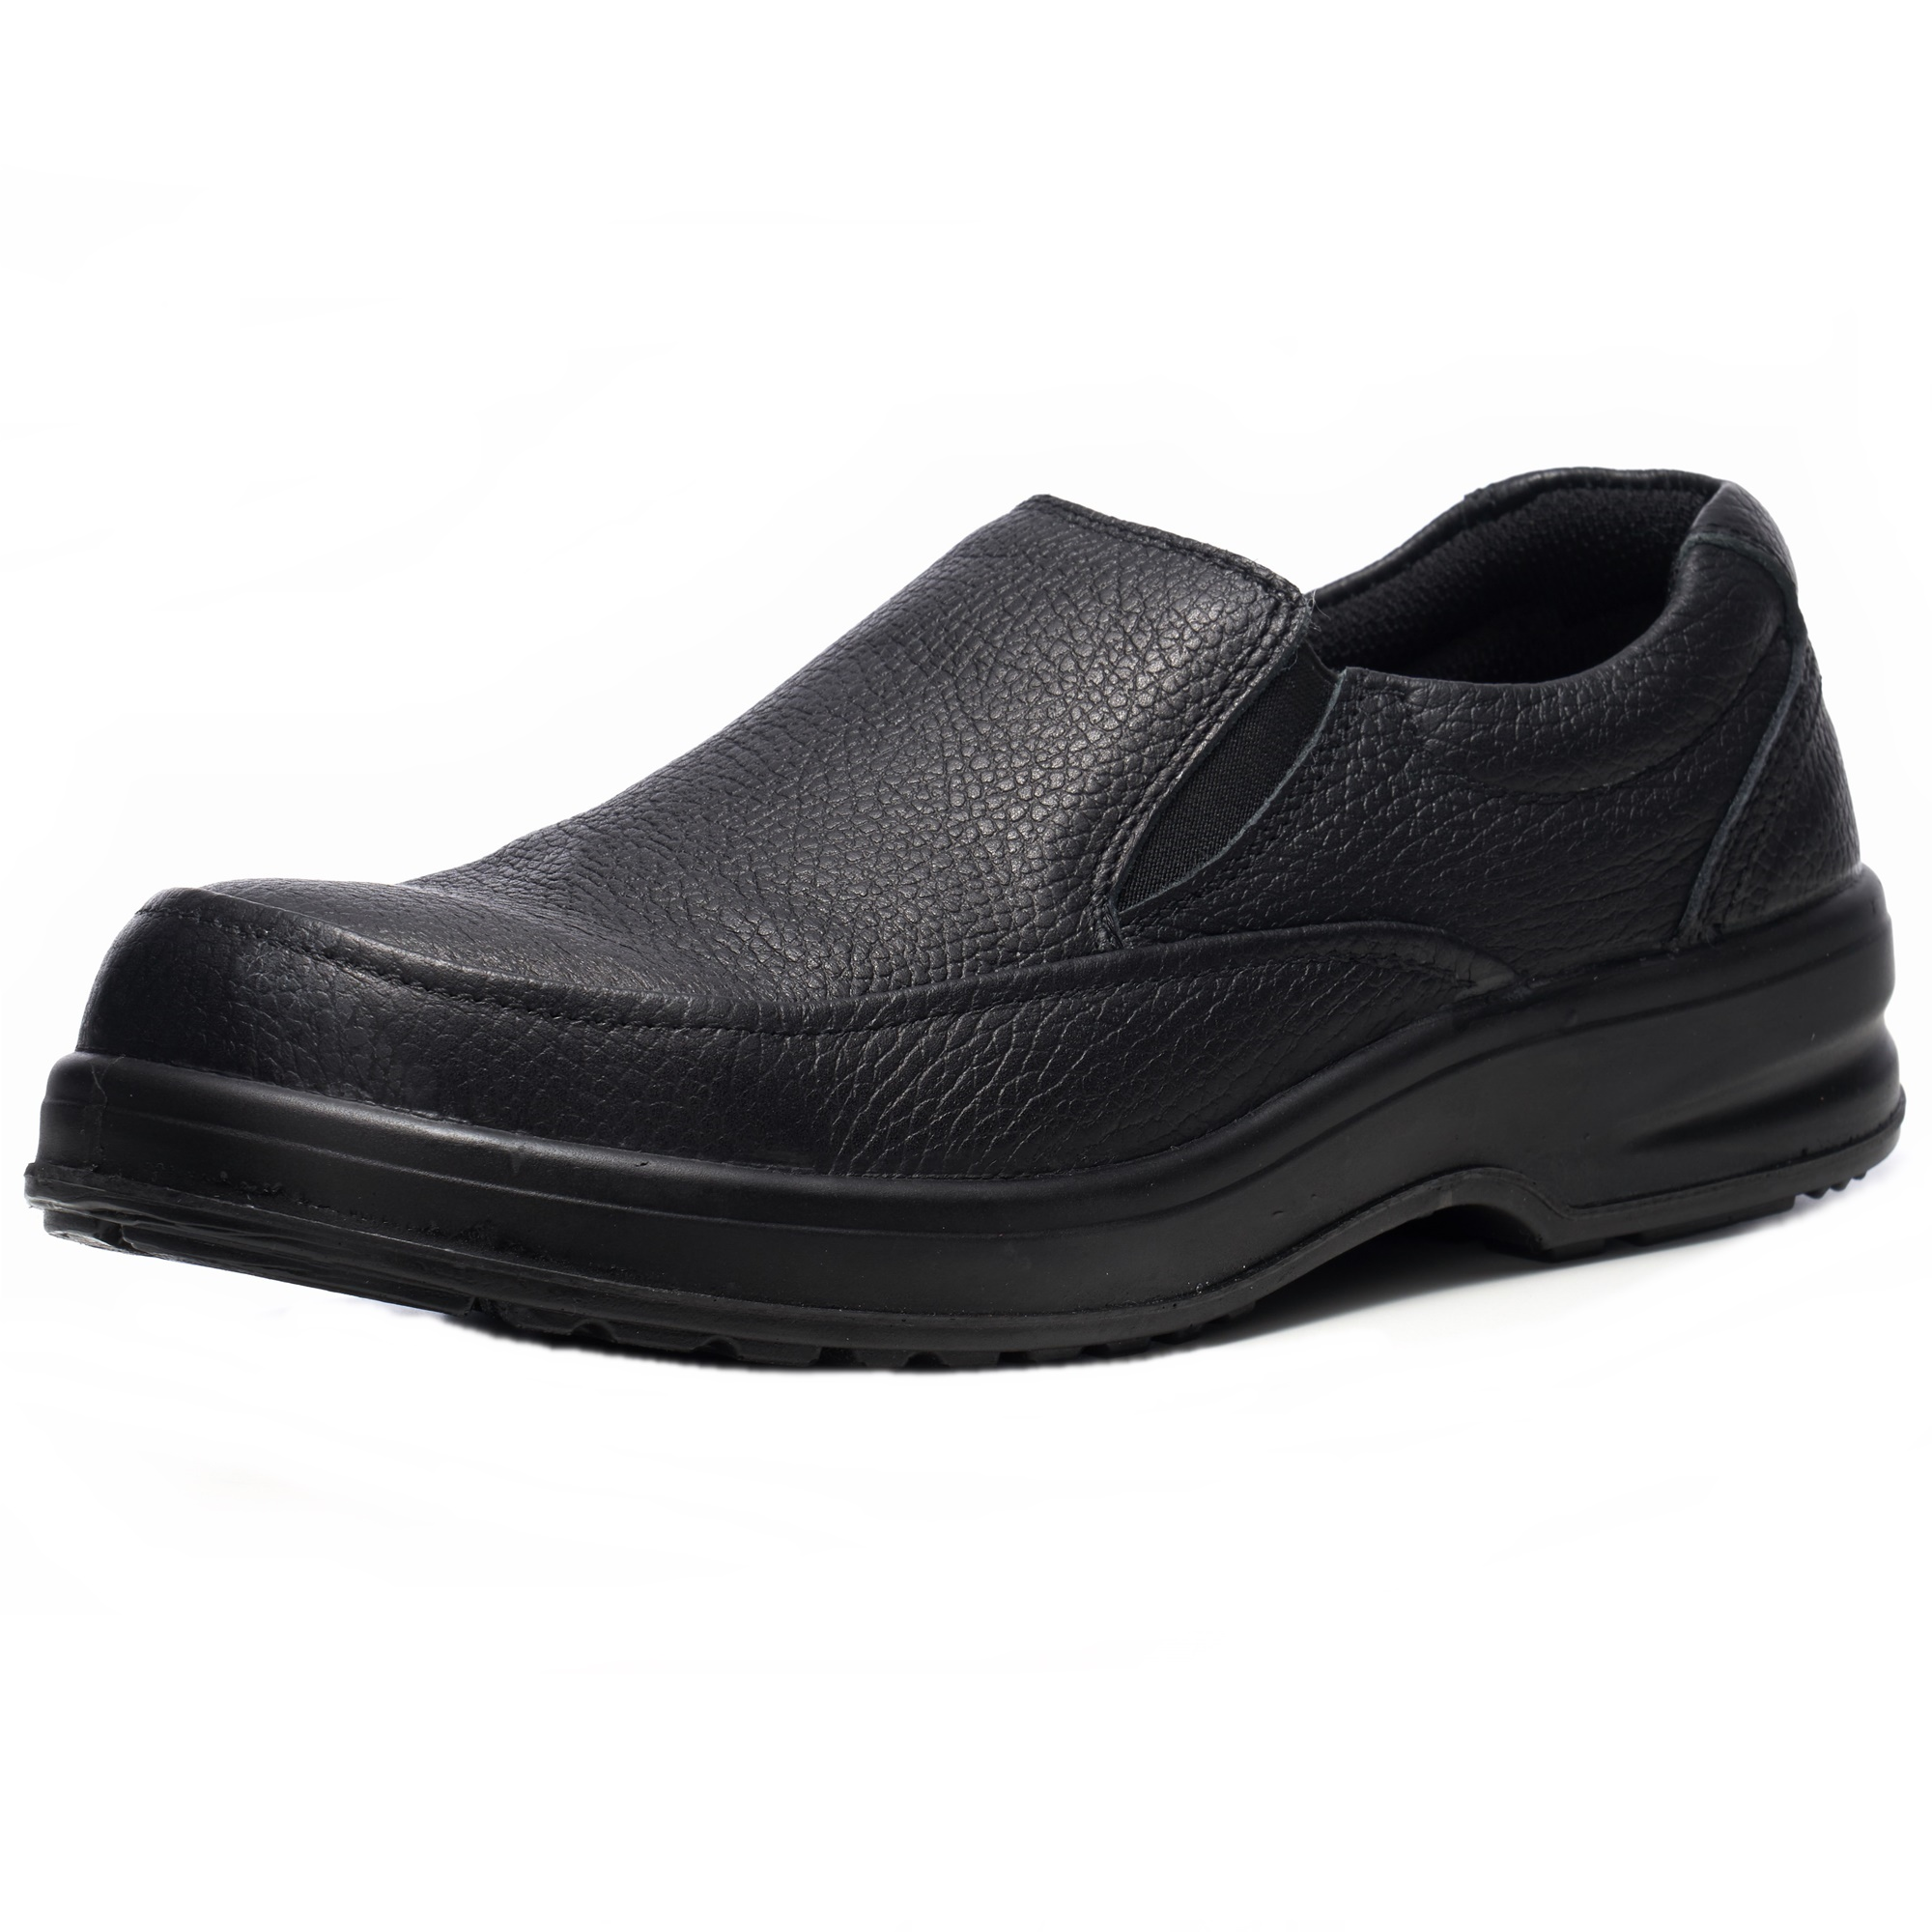 slip on leather work shoes